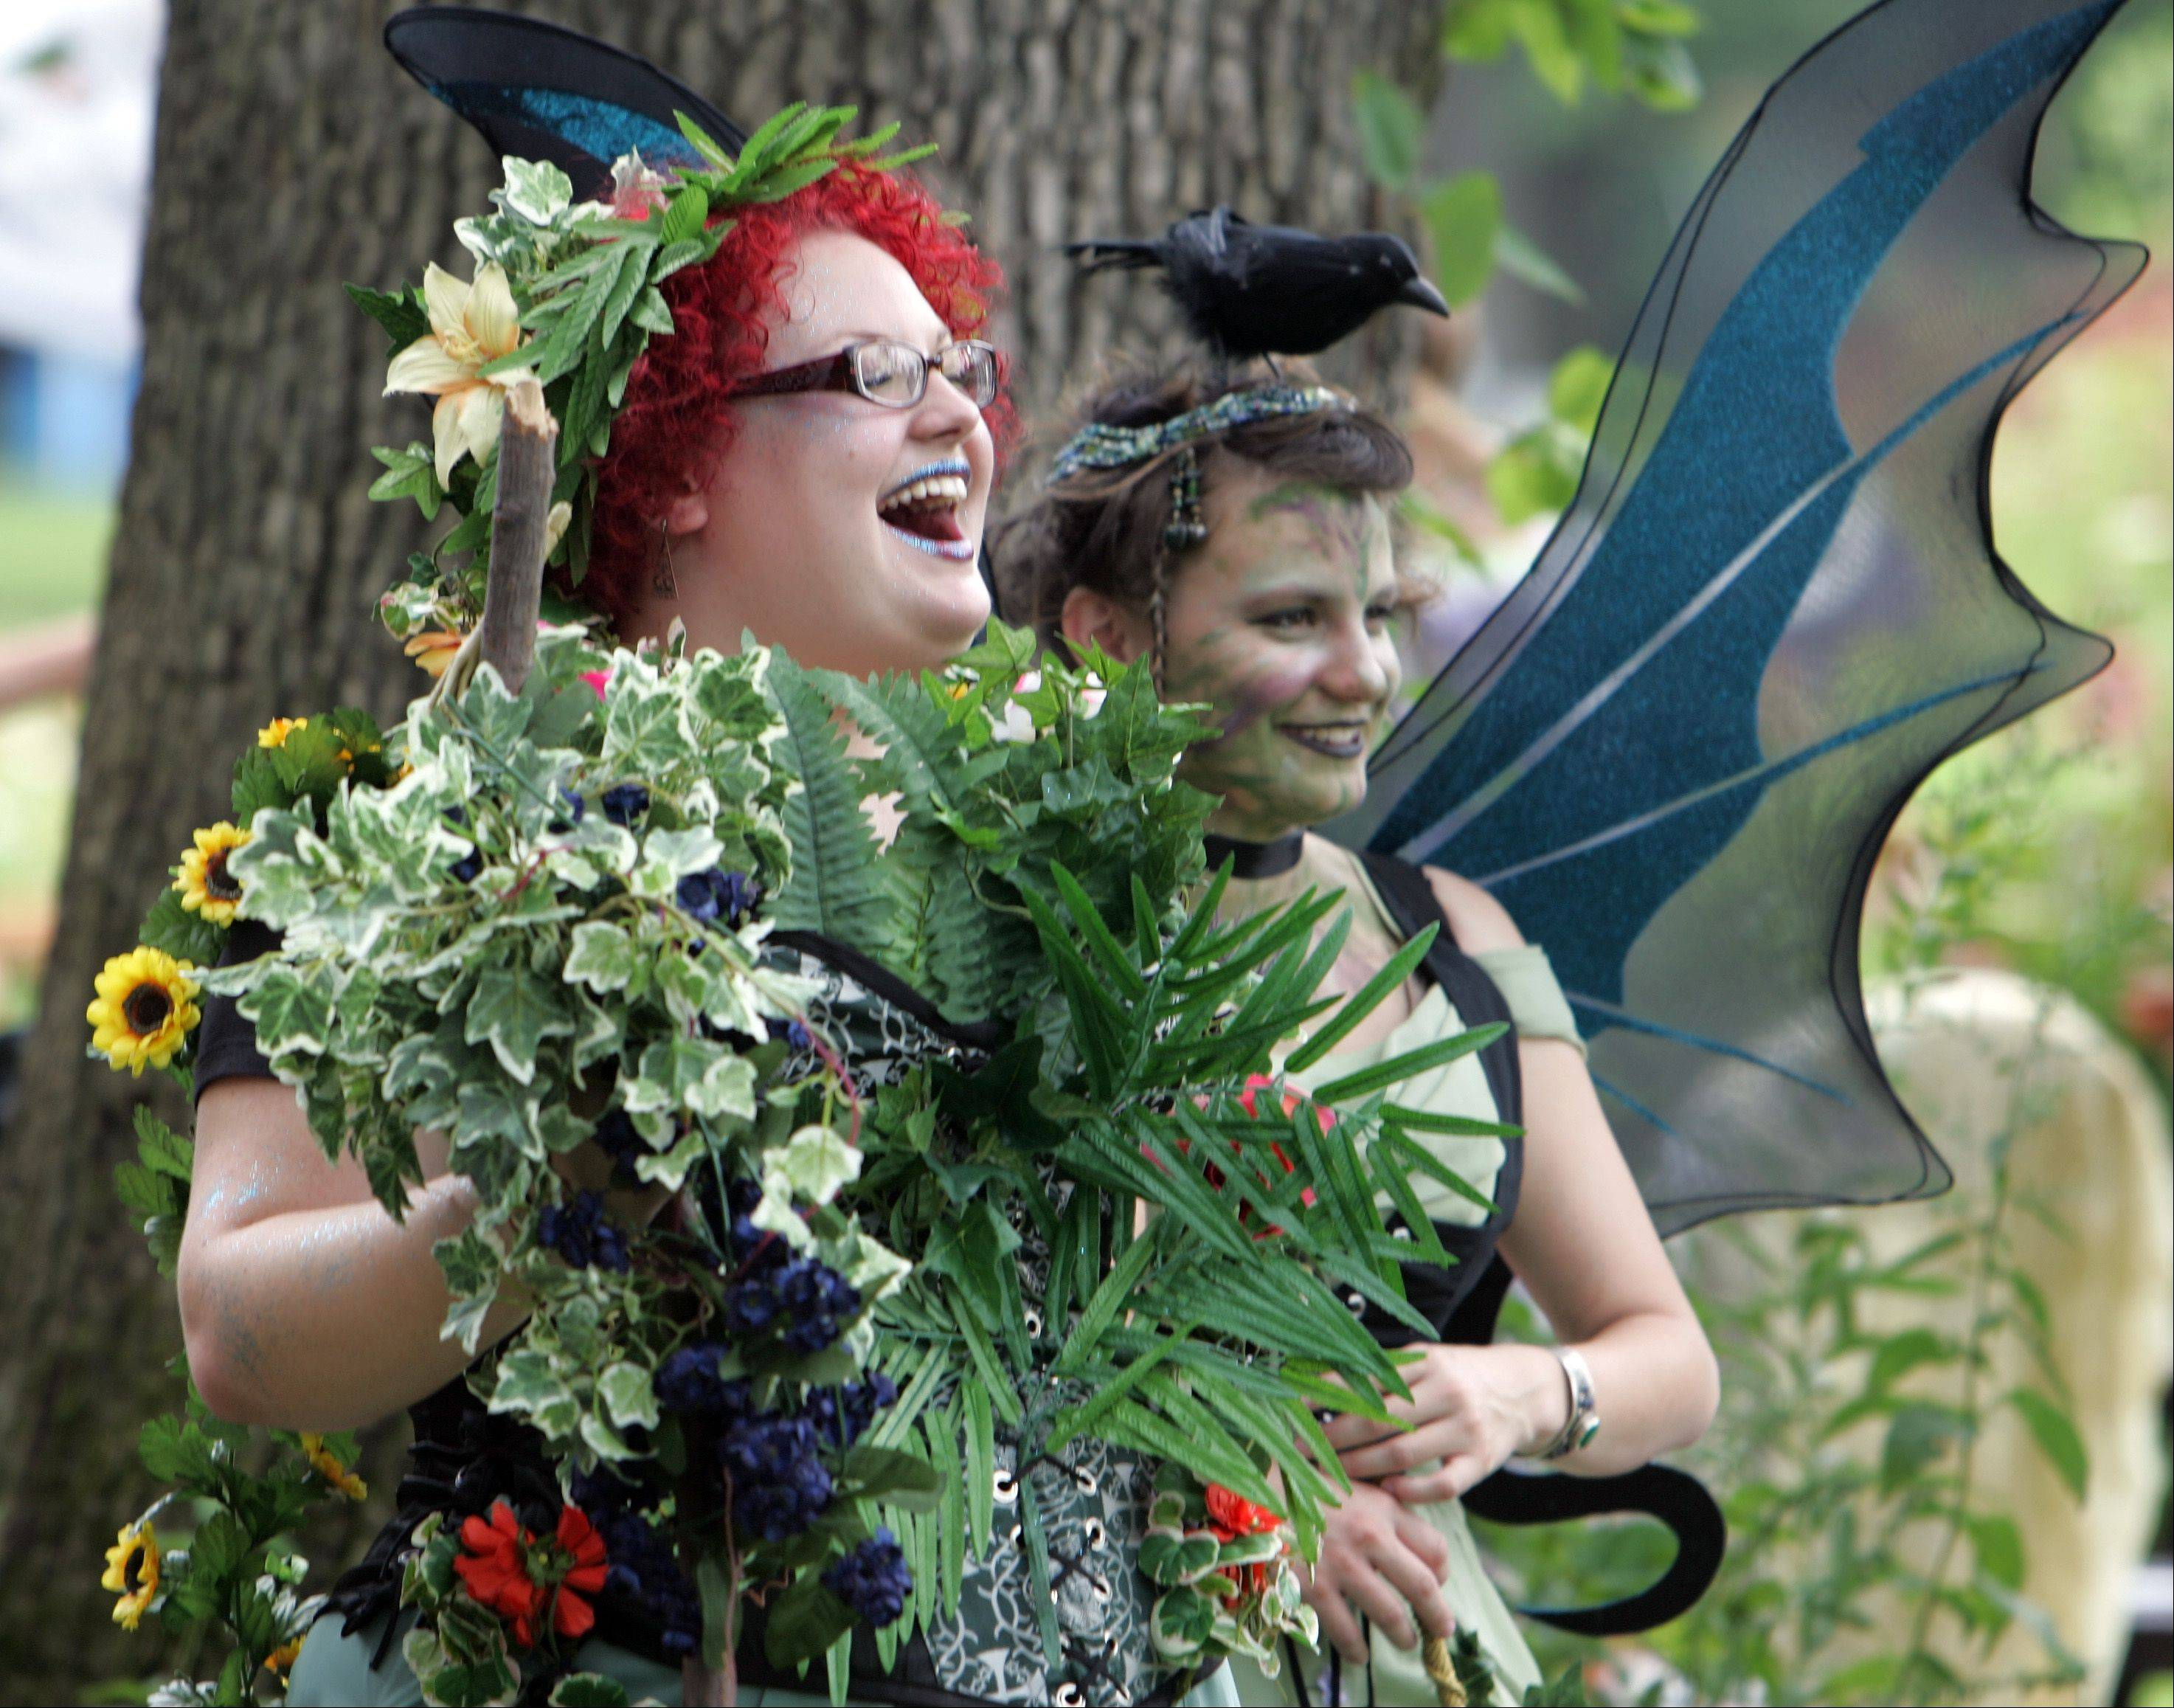 Emily Galasso, of Cary, left, and her sister Susan Galasso, of Madison Wis., share a laugh at last year's World of Faeries Festival at Vasa Park in South Elgin. This year's festival takes place Saturday and Sunday, Aug. 6-7.